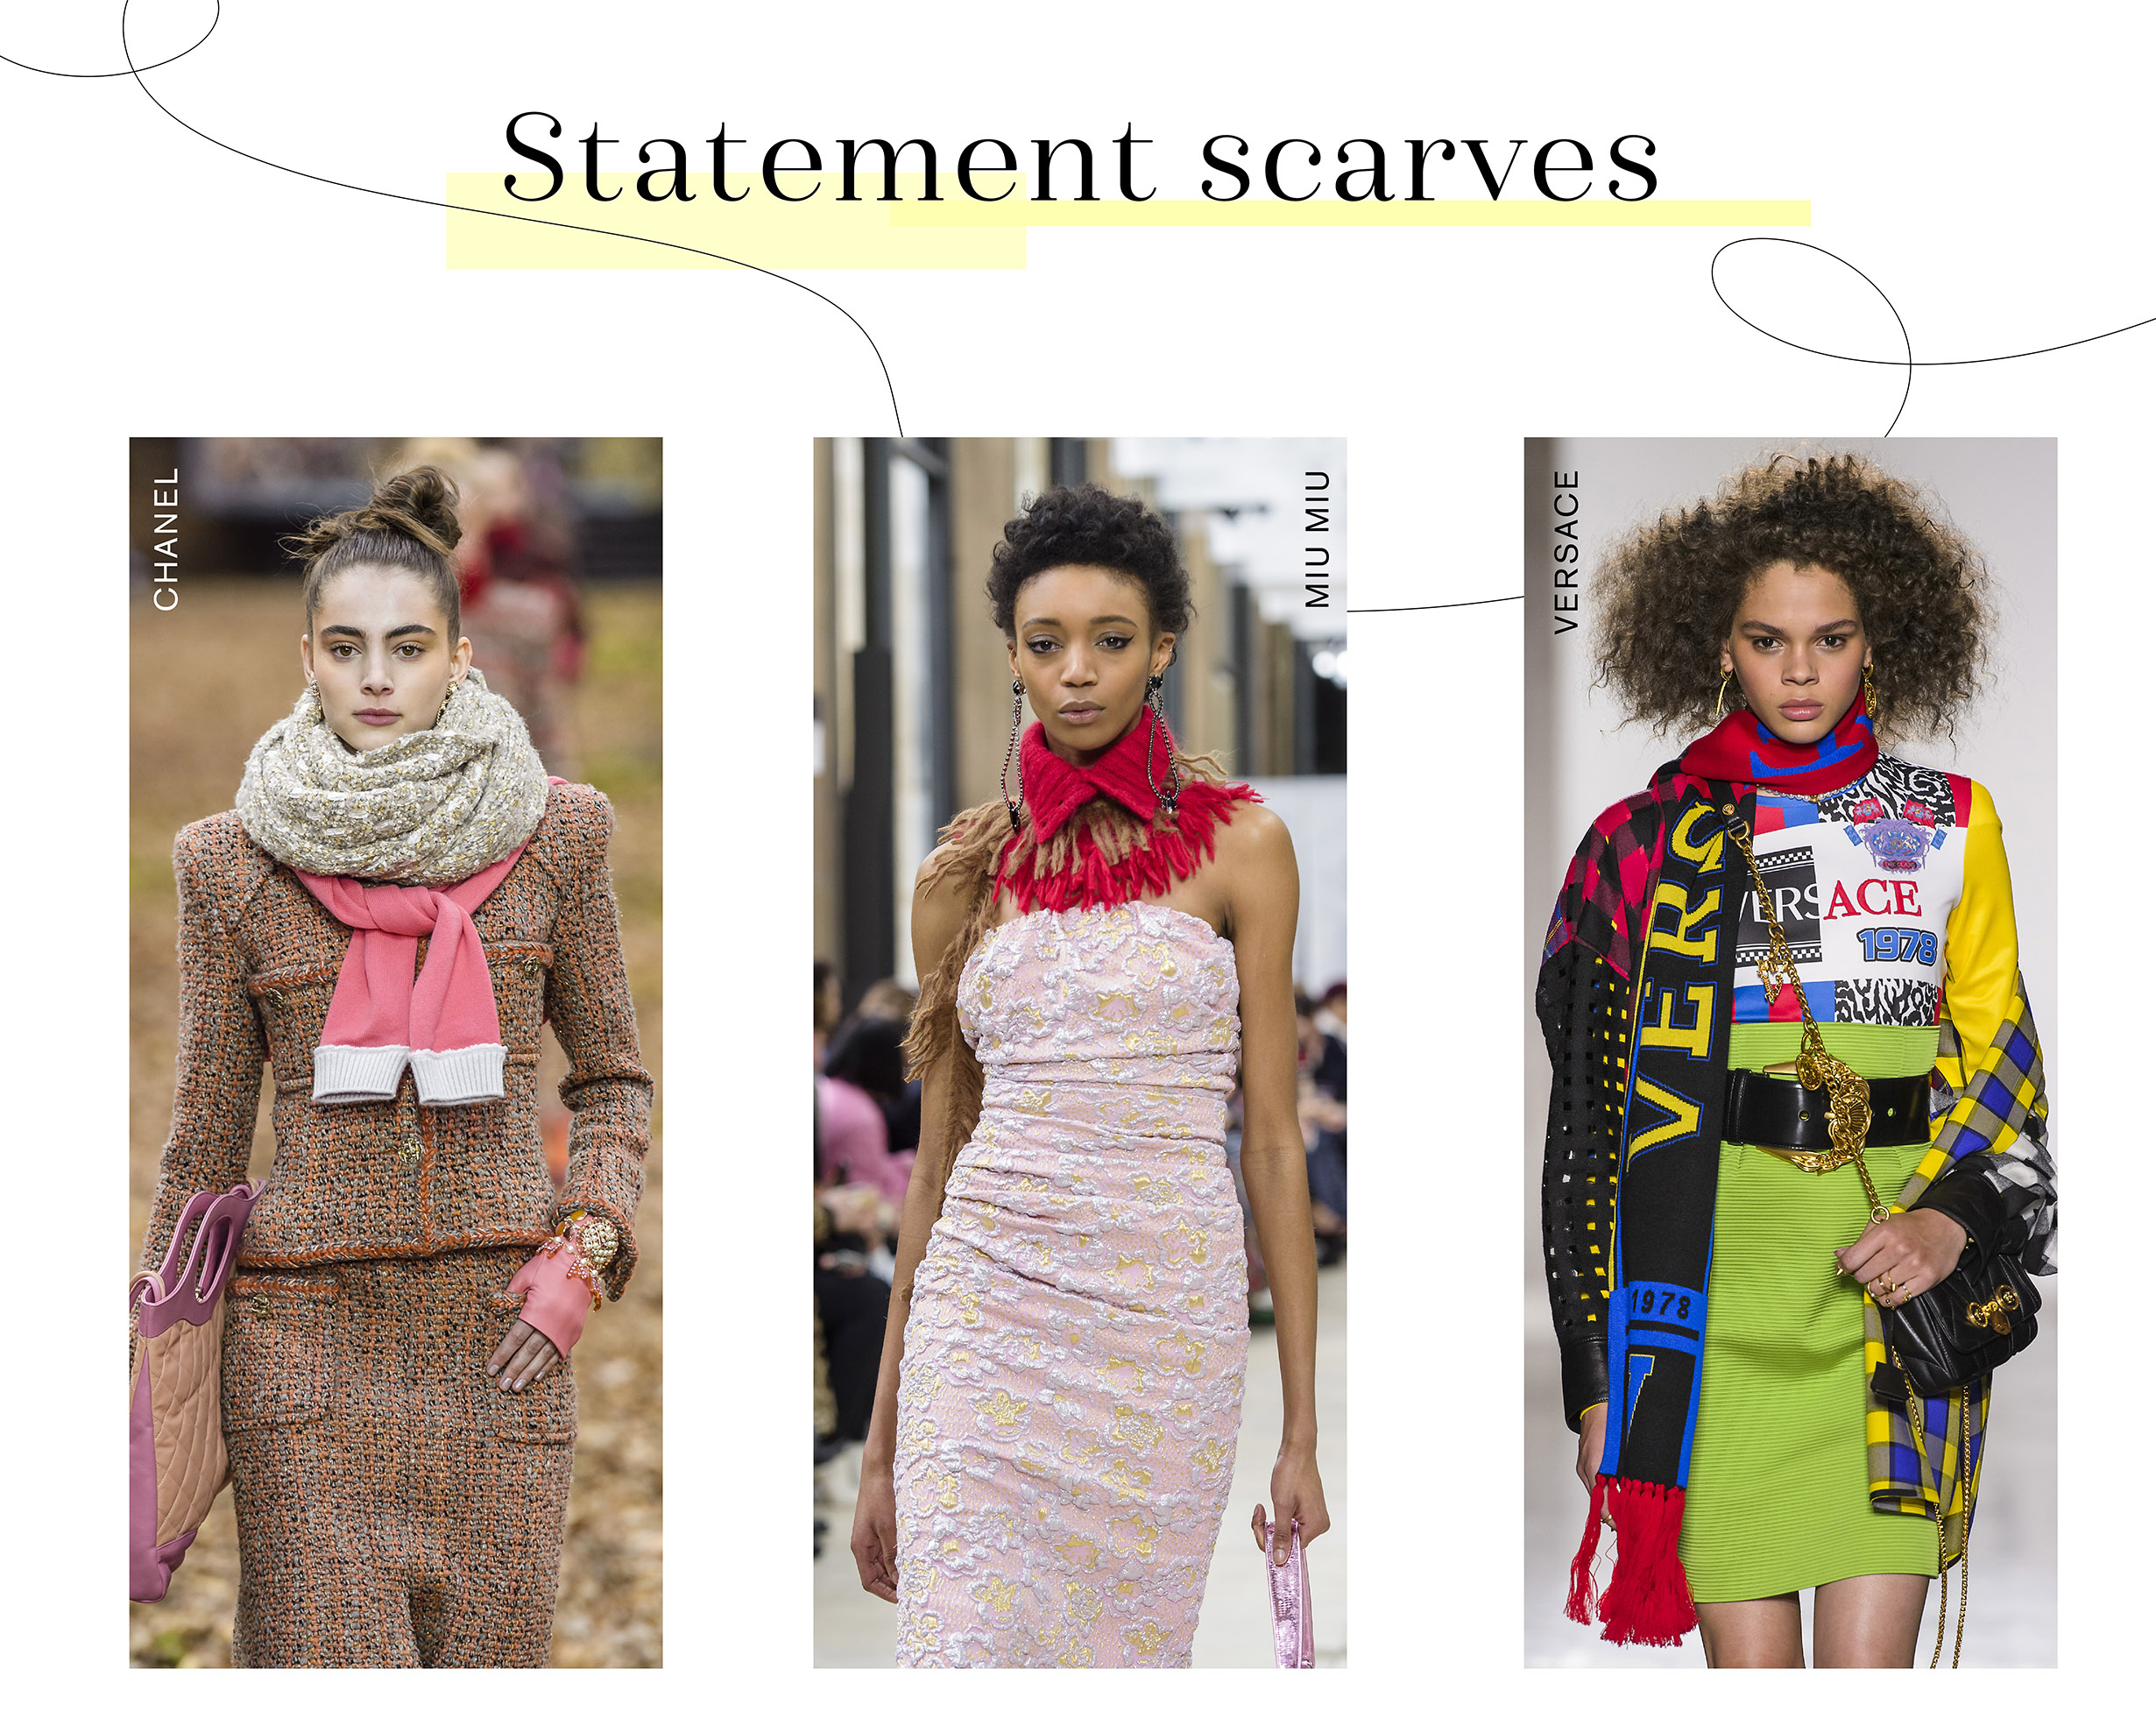 c0bcc45b3c0 Autumn Trends 2018 - All The Key Looks To Know